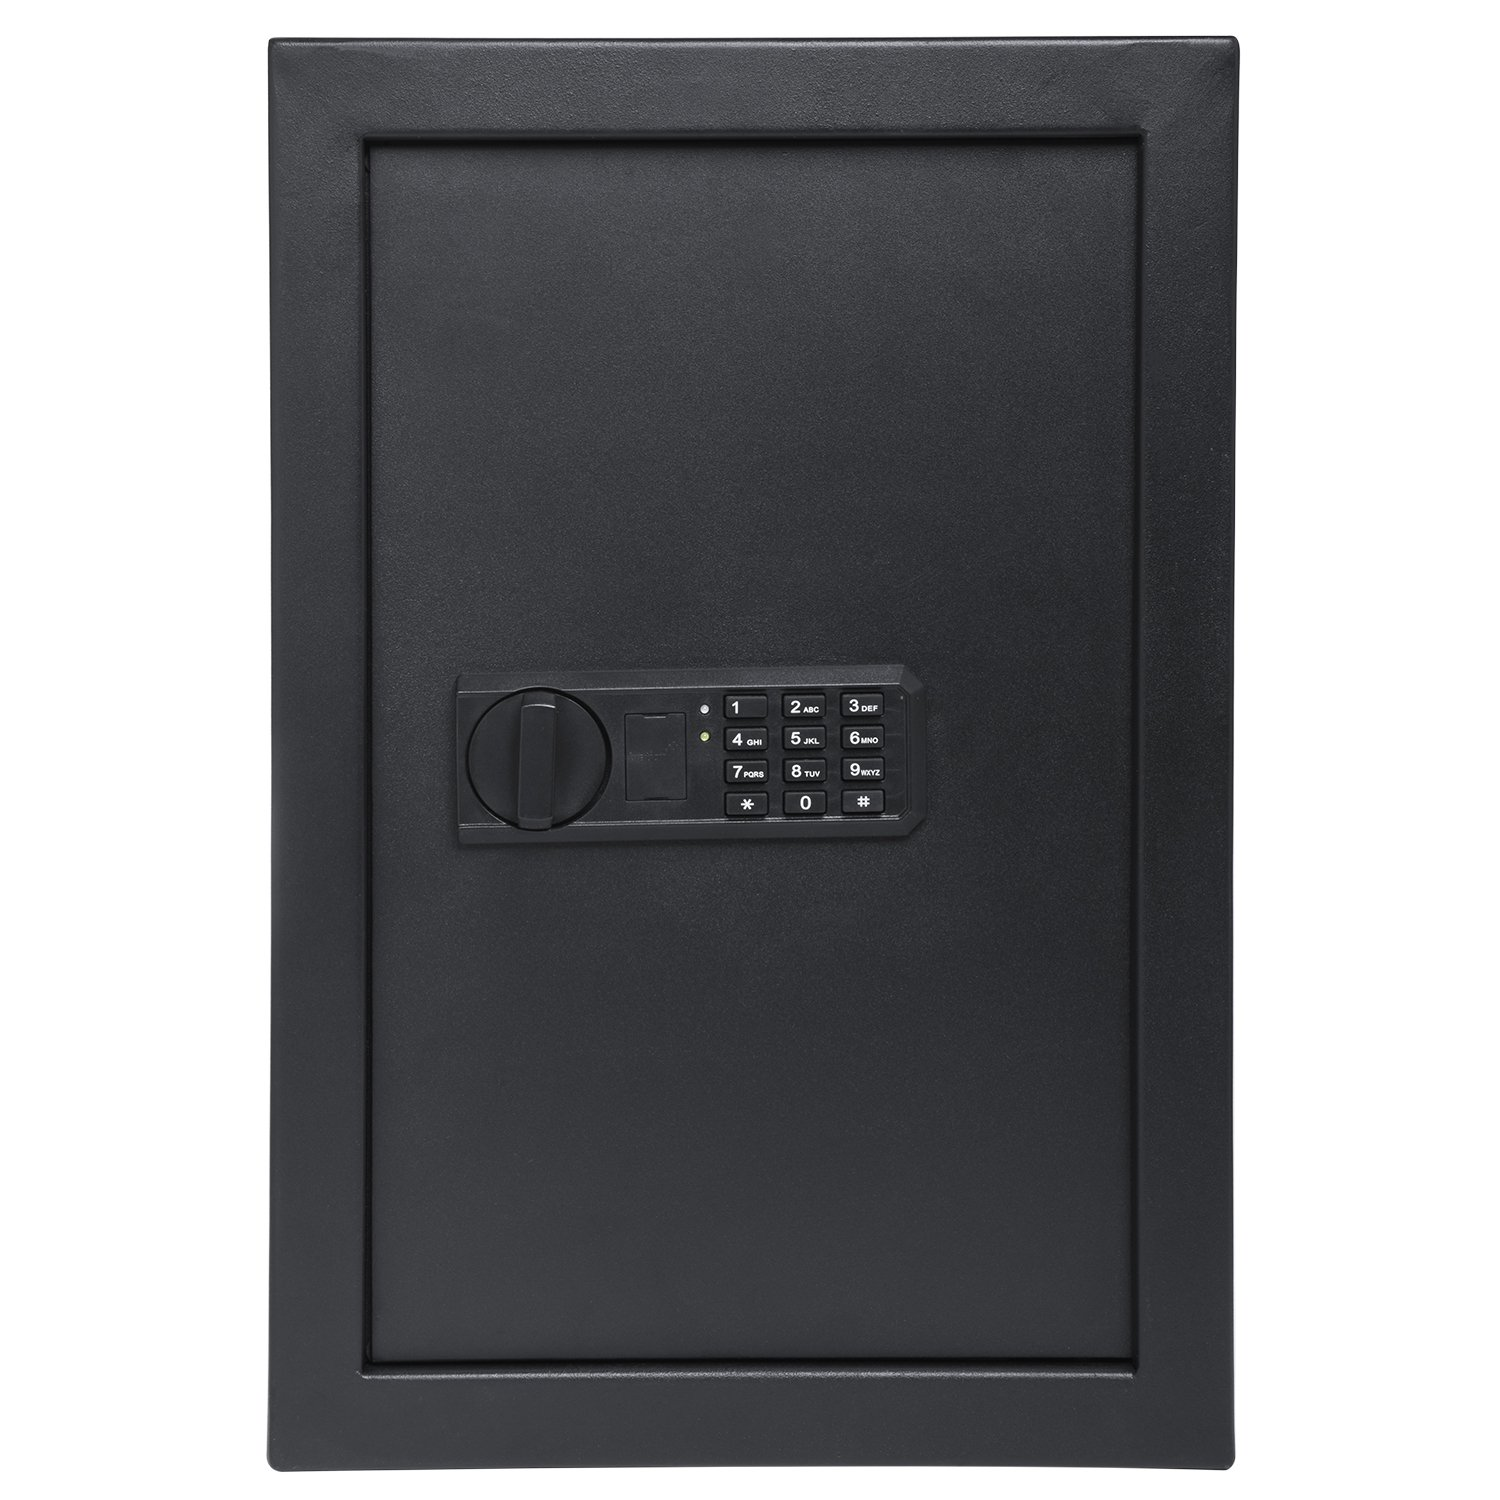 """Ivation Wall Safe, 20.6"""" x 13.8"""" x 3.7"""" Home Security Box, Backup Keys & Mounting Kit (Keypad) by Ivation (Image #1)"""